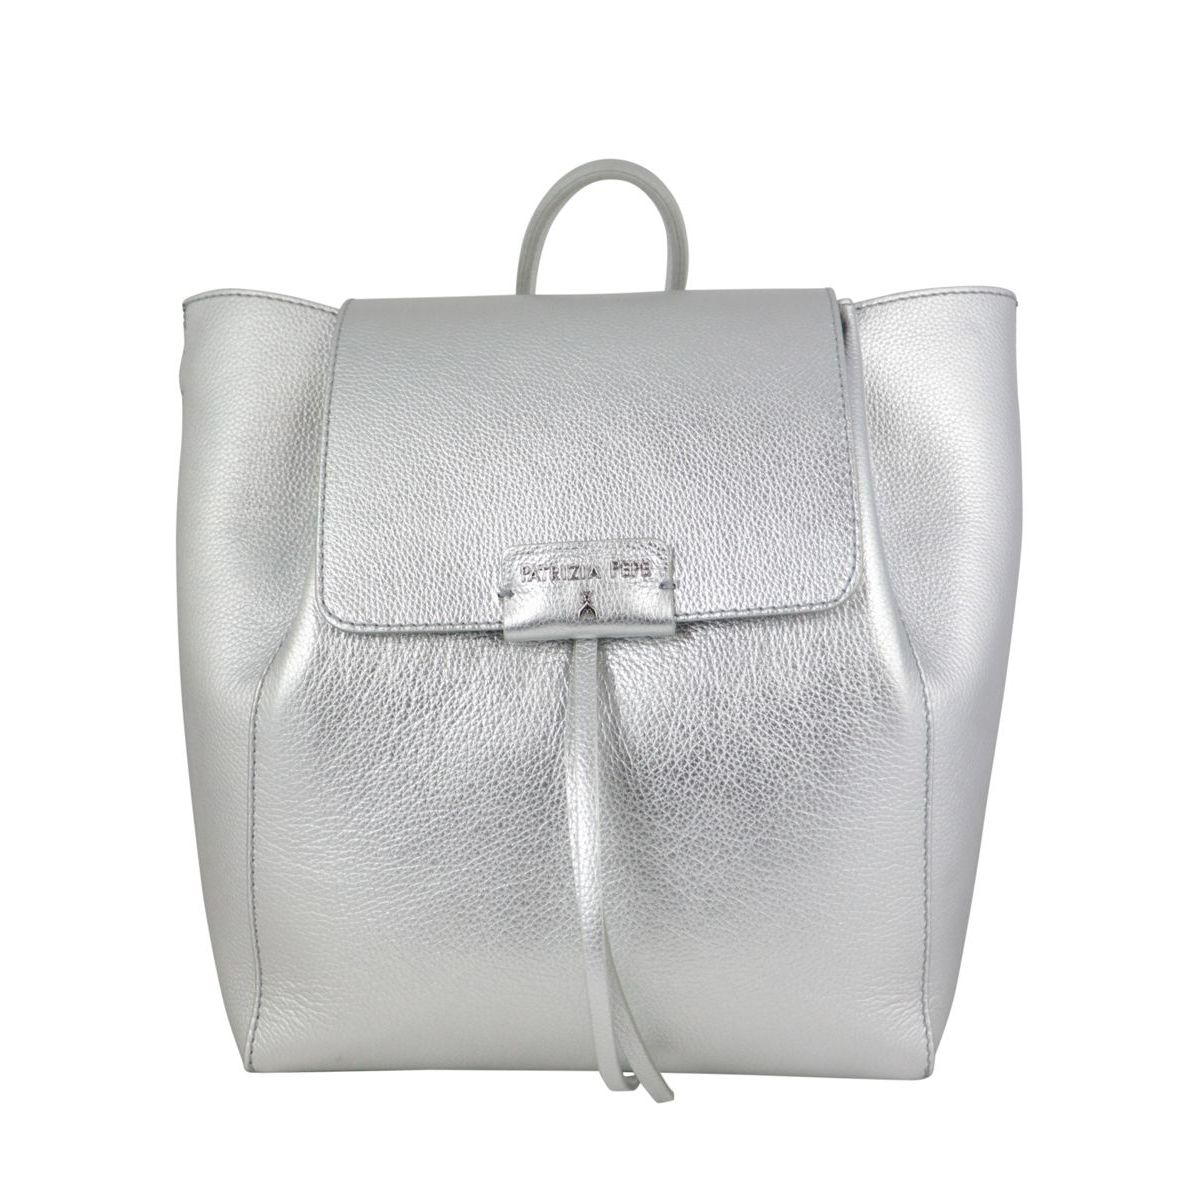 Textured leather backpack with logo Silver Patrizia Pepe